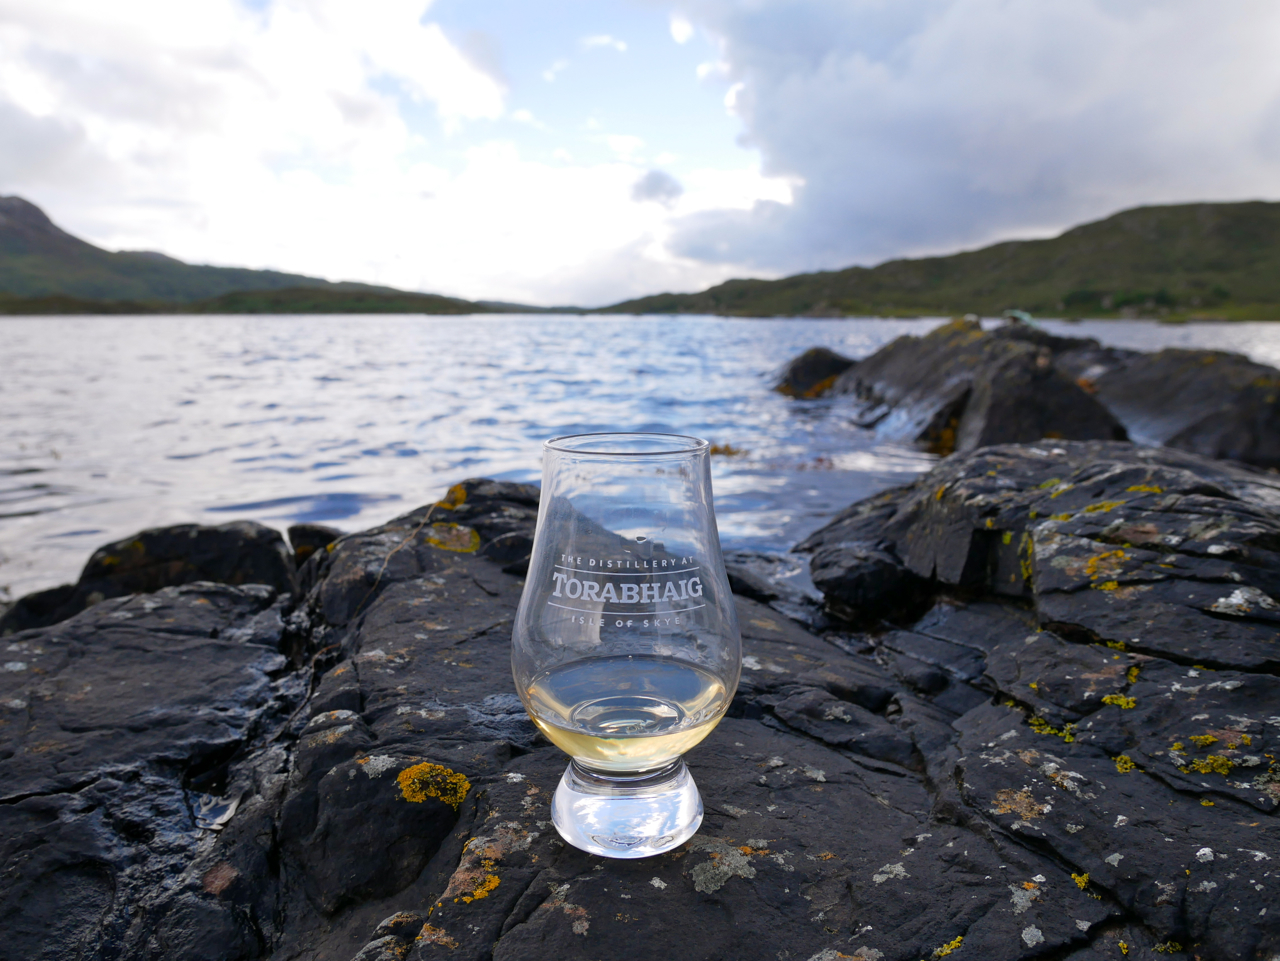 Blick auf schottische Küste auf der Isle of Skye bei Torabhaig Single Malt Scotch Whisky Destillerie mit Whisky in Glencairn Whiskyglas Nosingglas